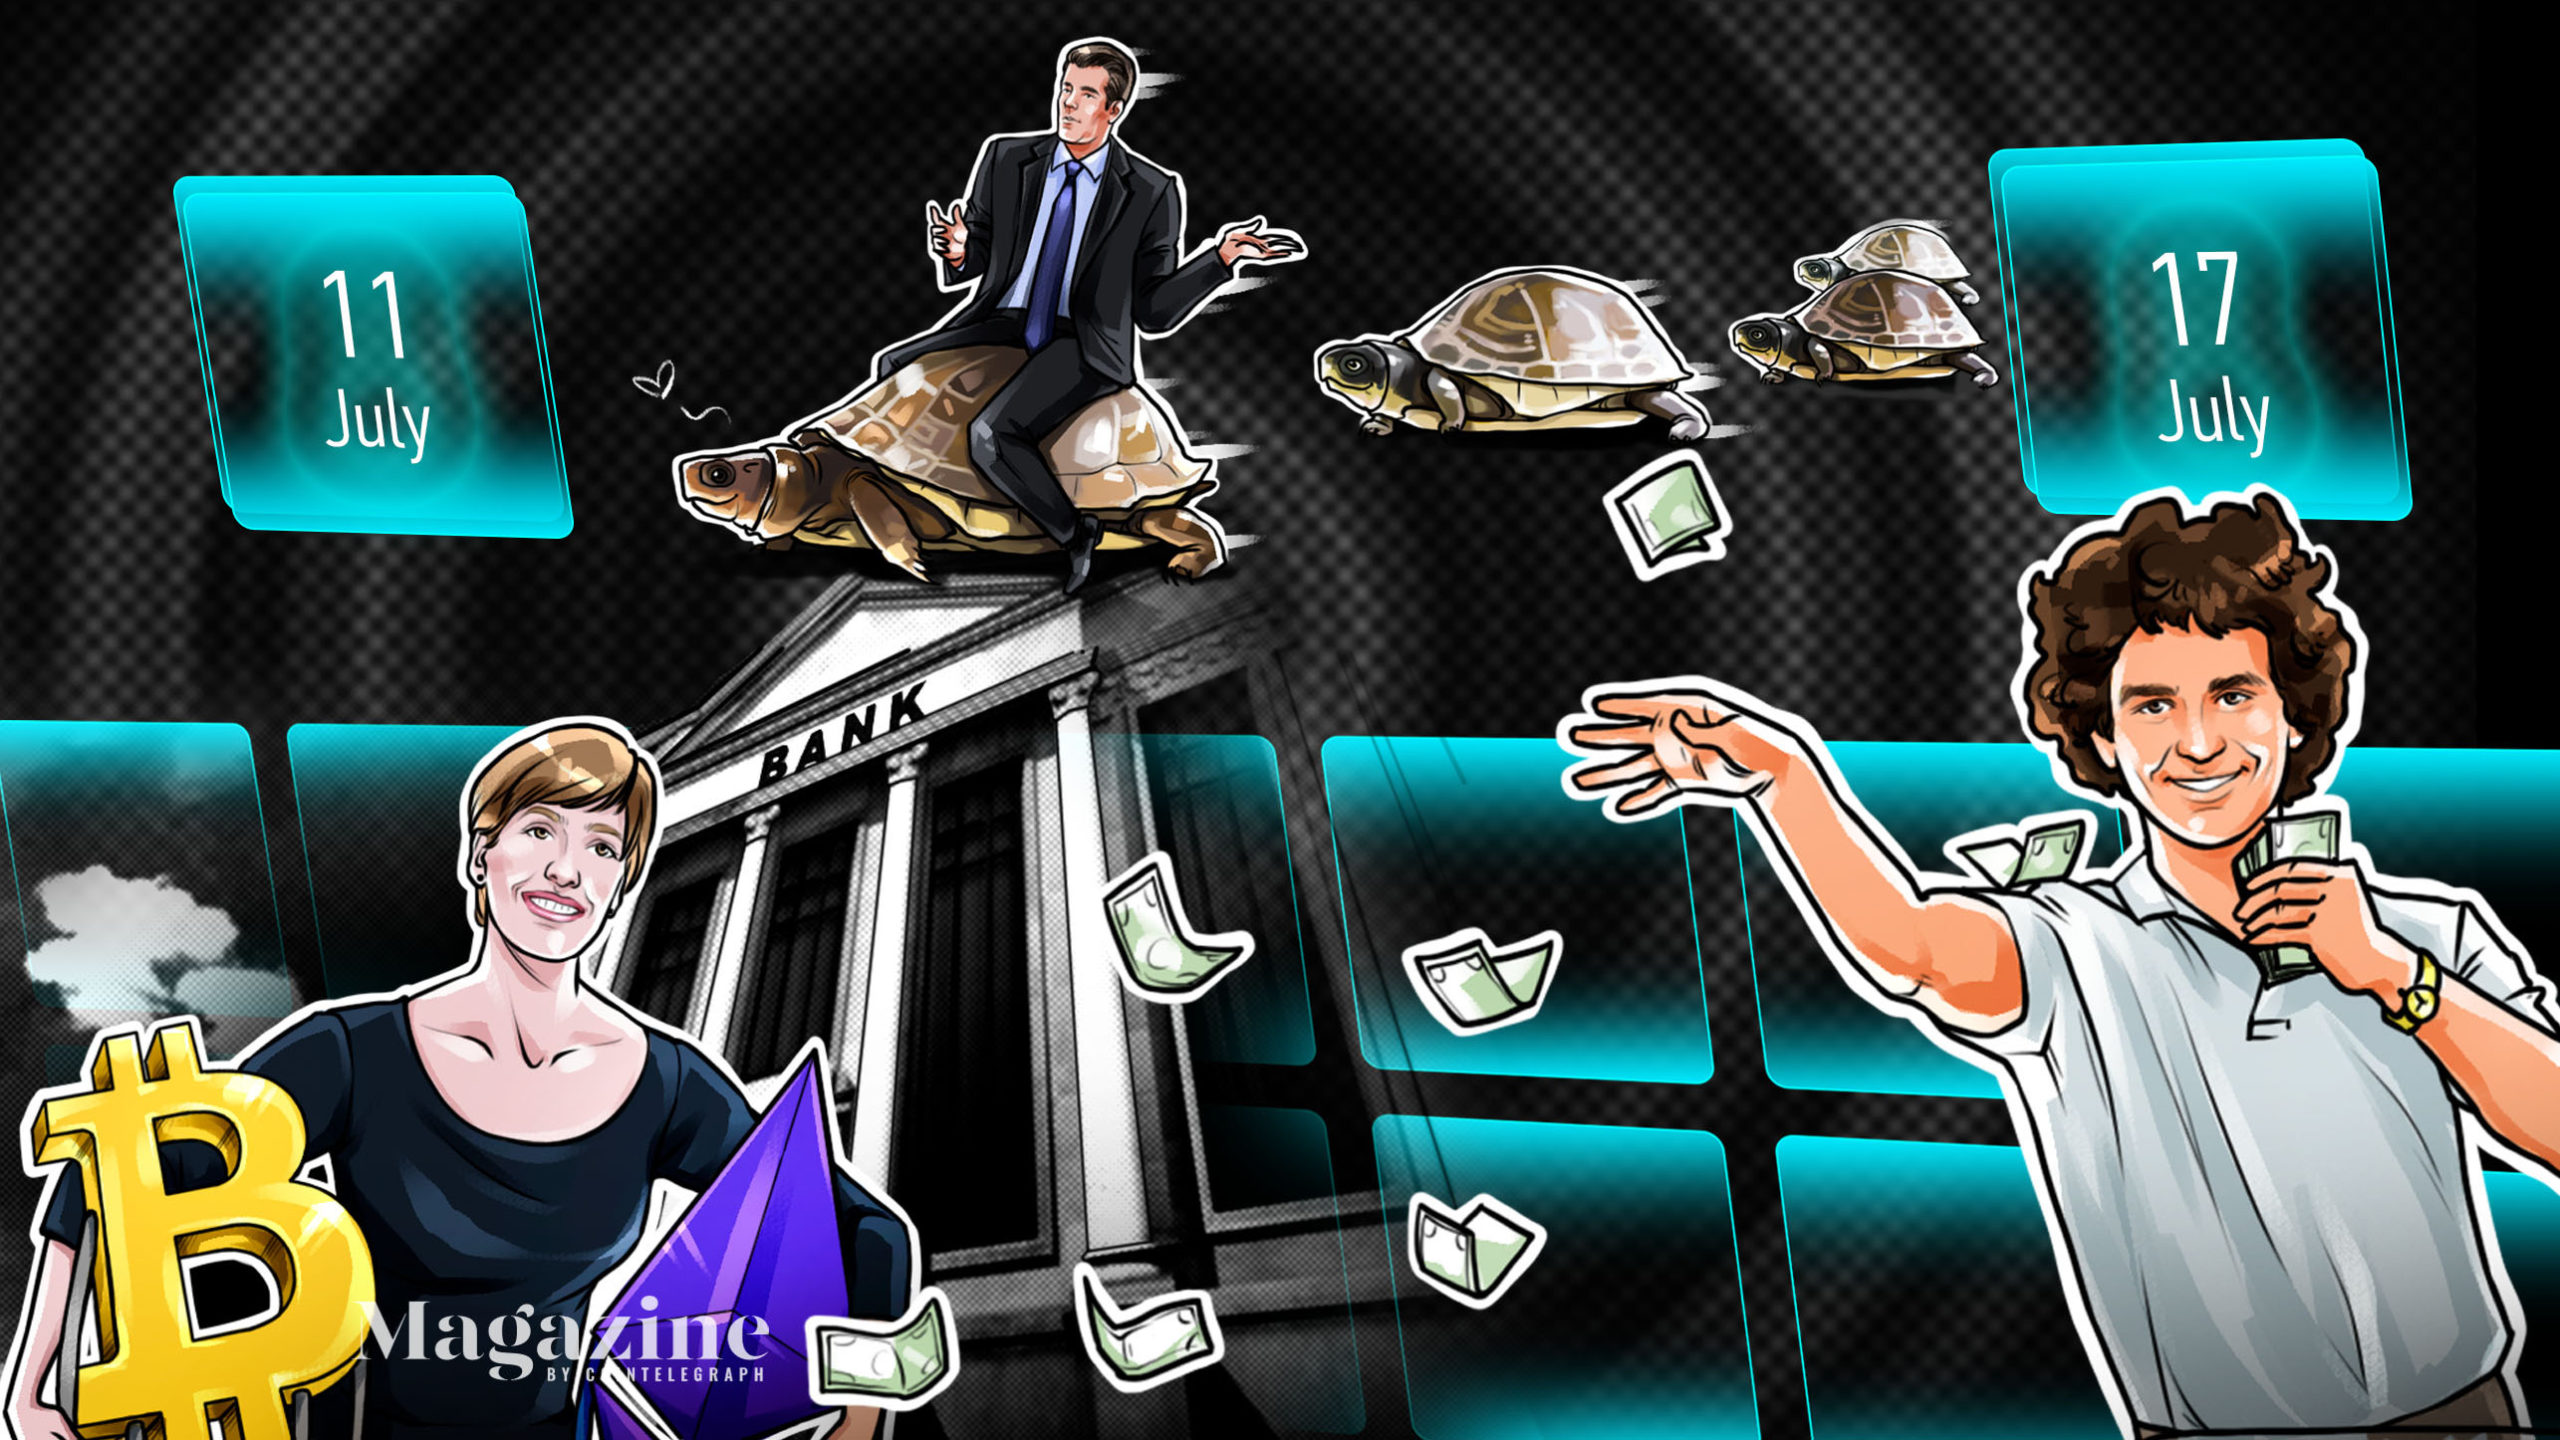 SEC delays another ETF decision, Binance news, and more sideways BTC price action: Hodler's Digest, July 11–17